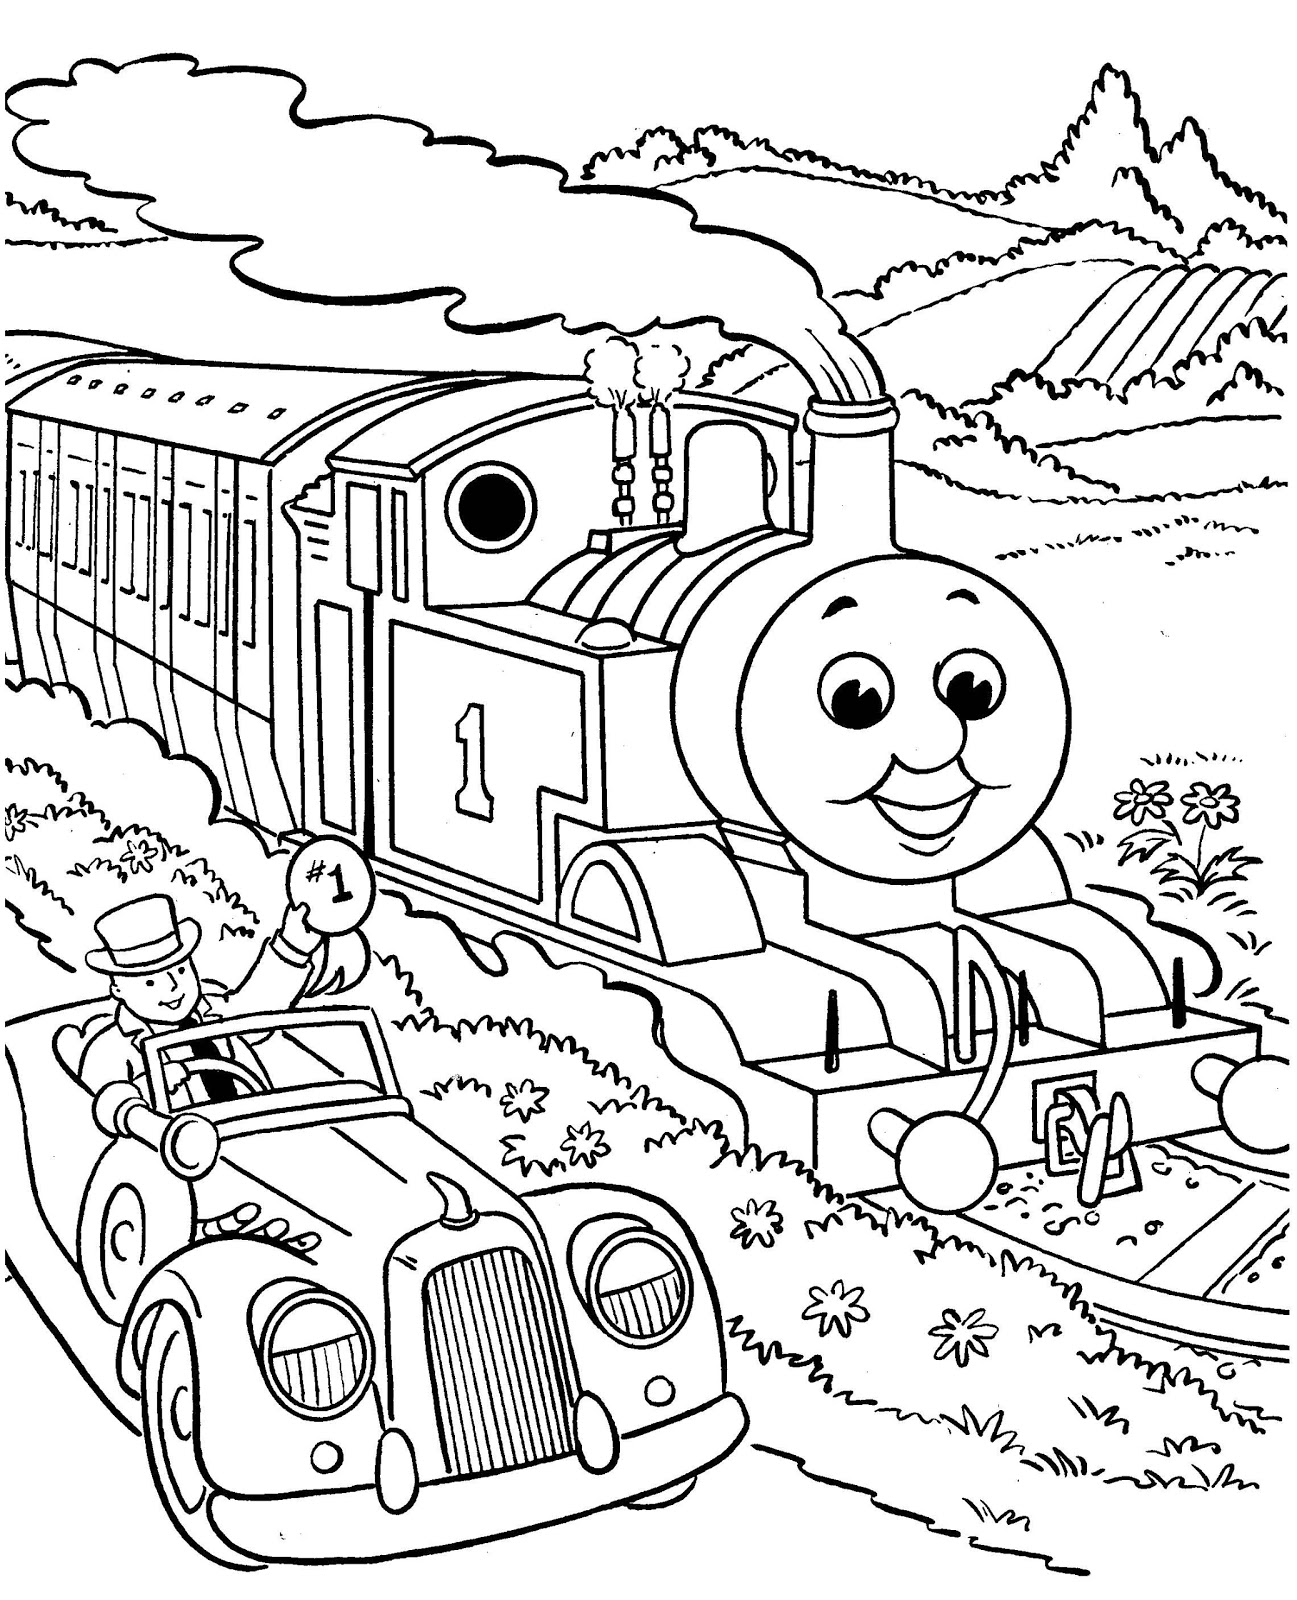 1297x1600 Thomas The Train Coloring Pages